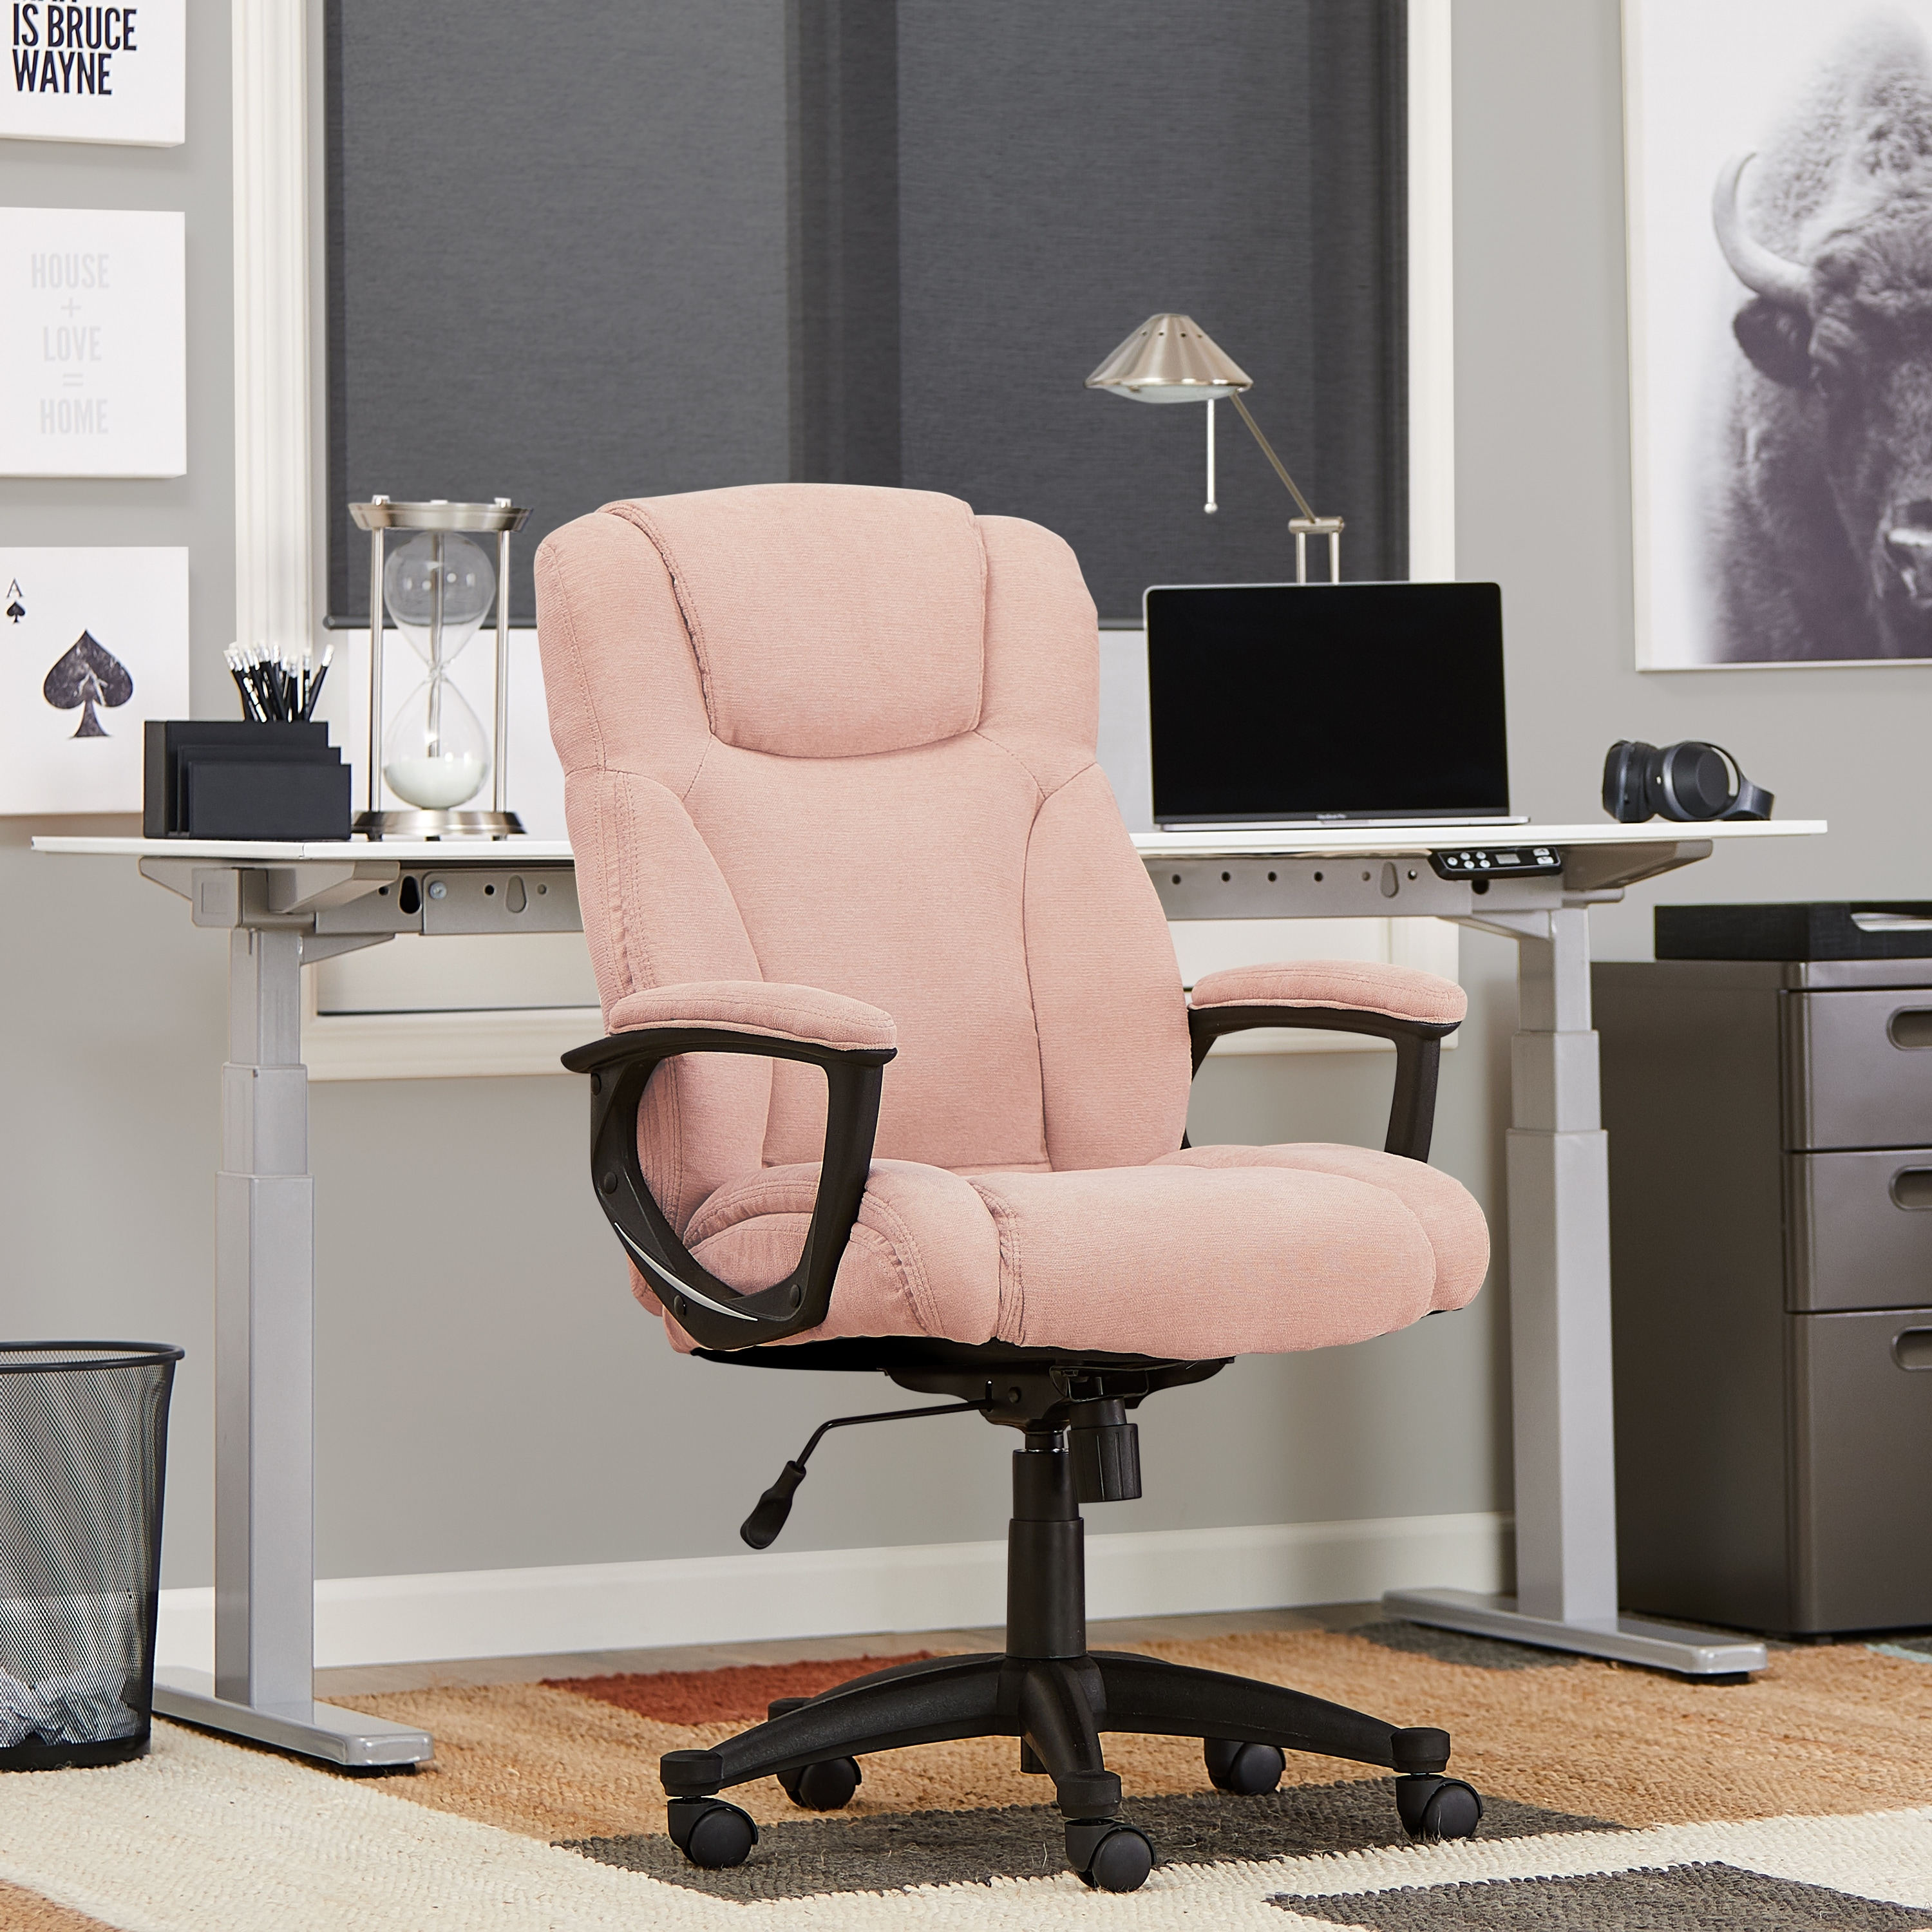 Shop Serta Style Hannah Ii Office Chair Microfiber Pink Overstock 20893067